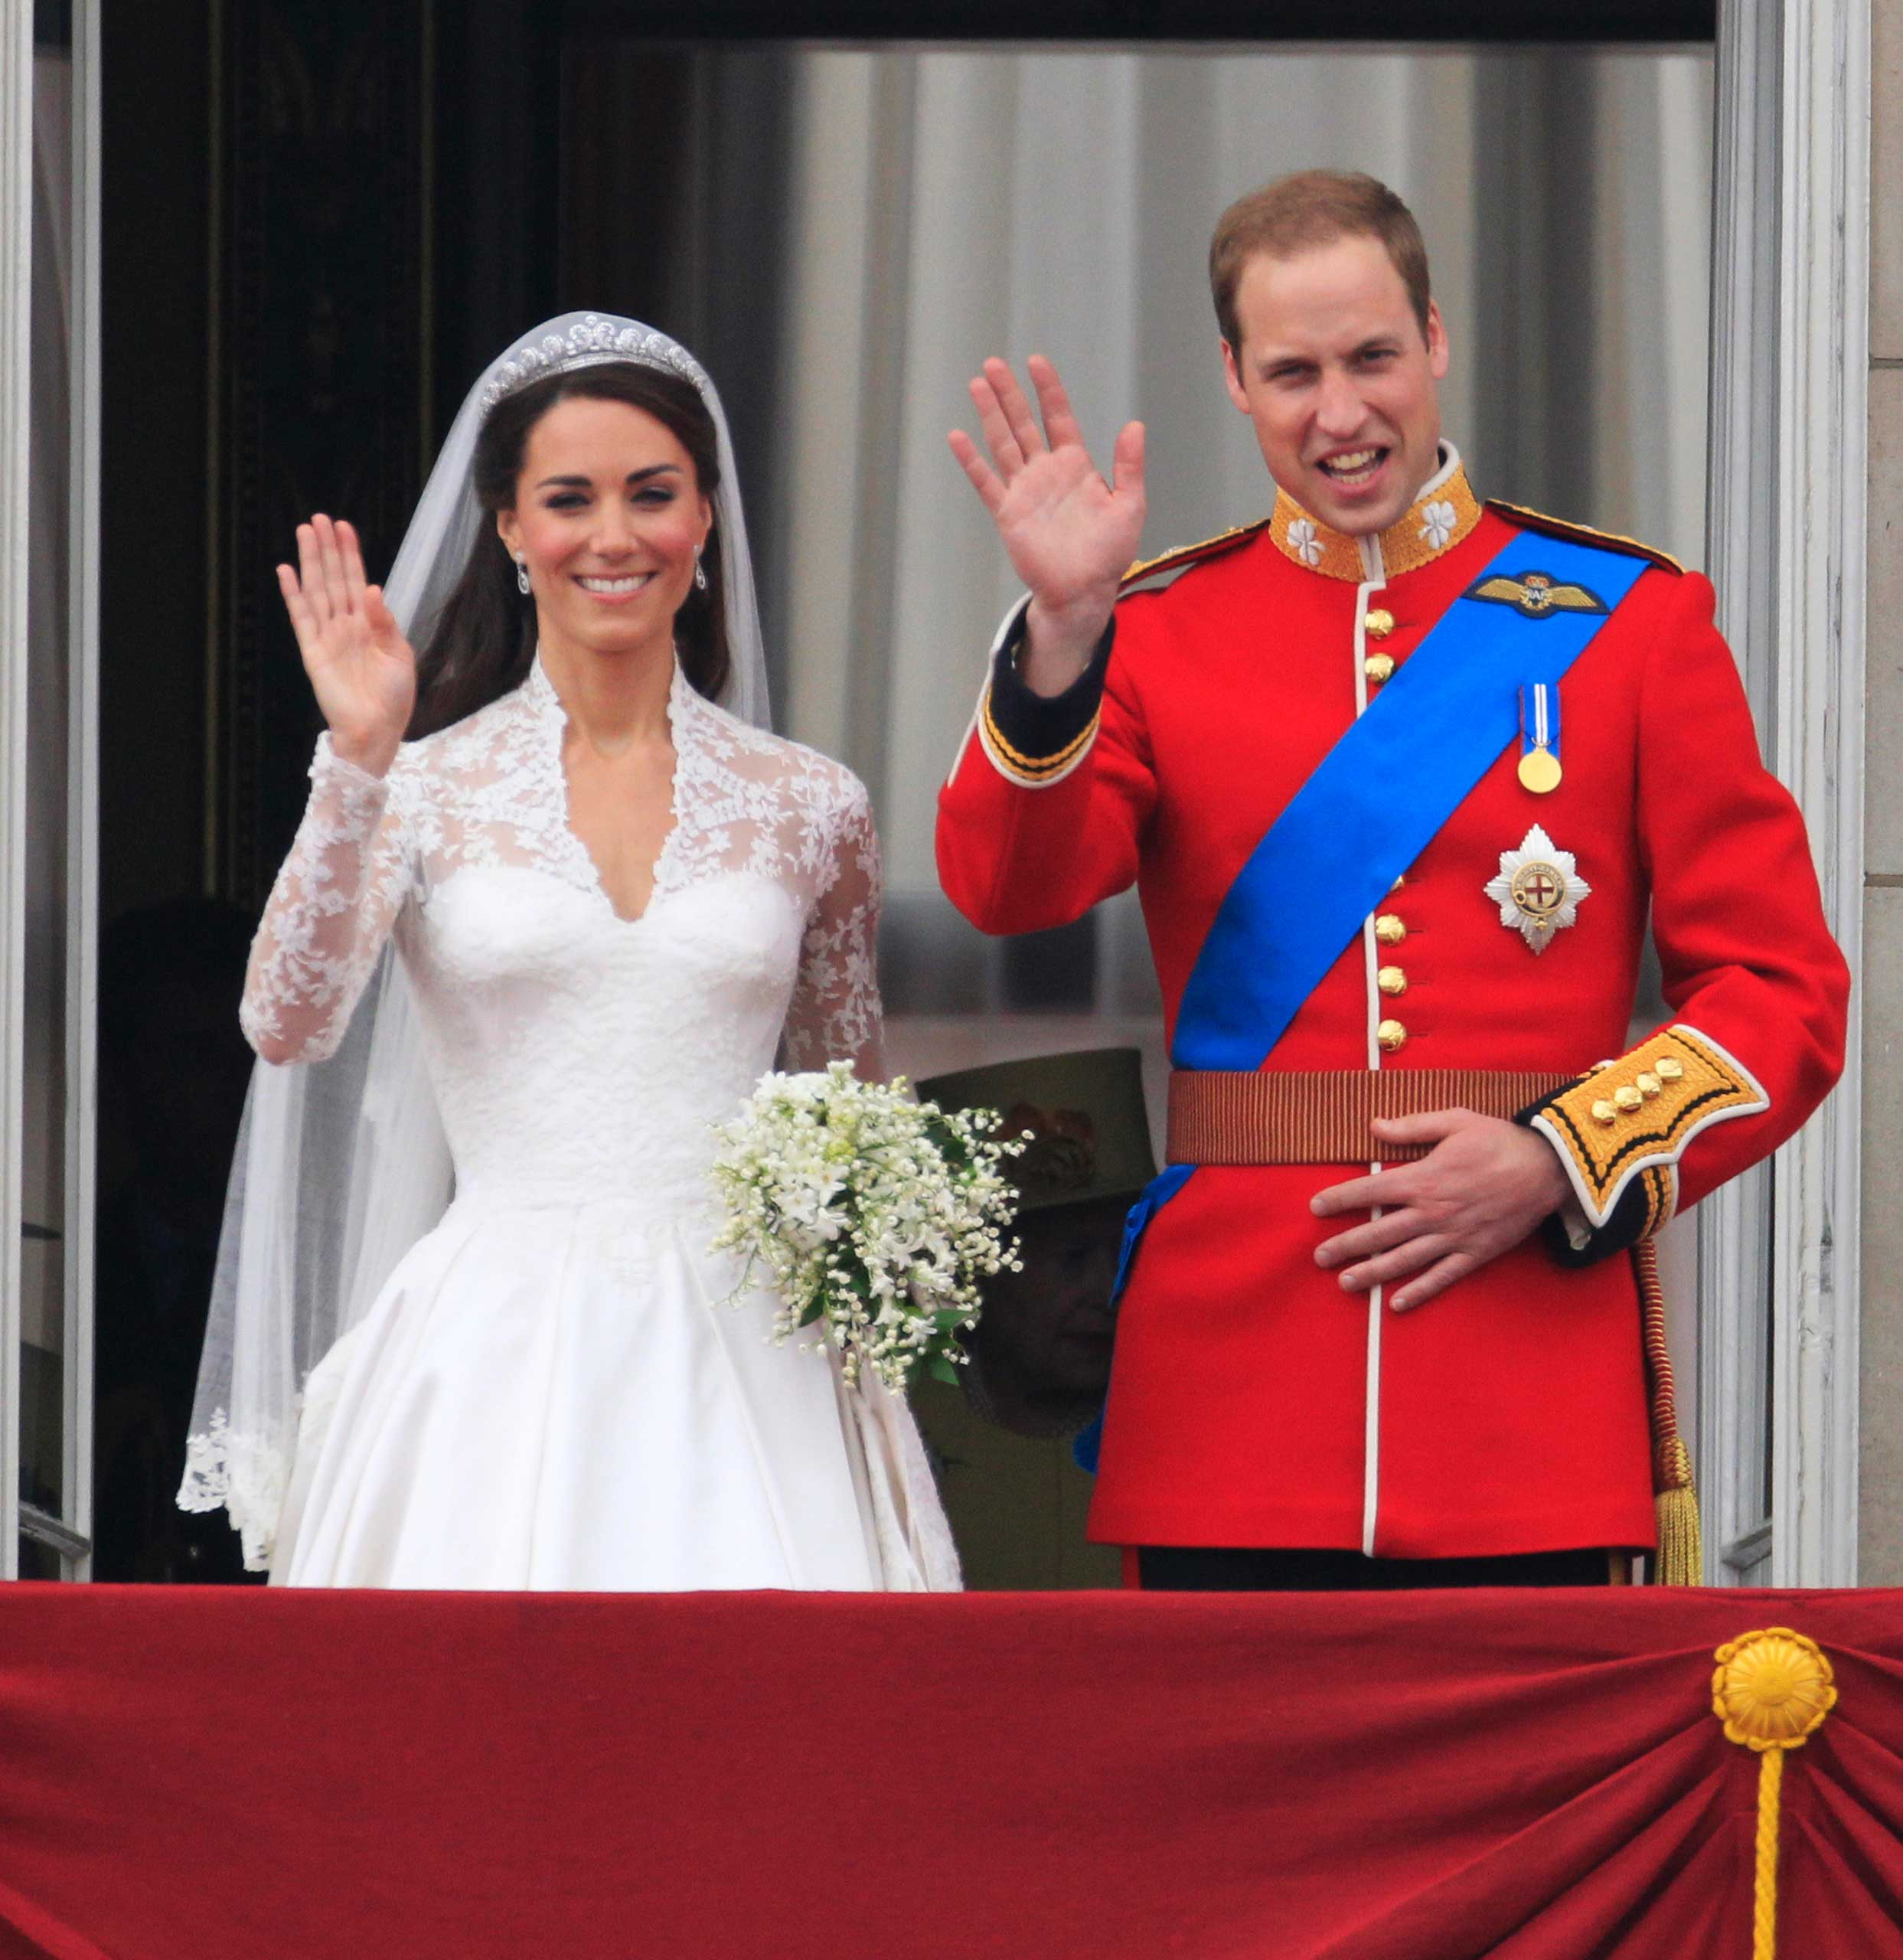 Britain's Prince William and his wife Kate, Duchess of Cambridge wave from the balcony of Buckingham Palace after the Royal Wedding in London April, 29, 2011.